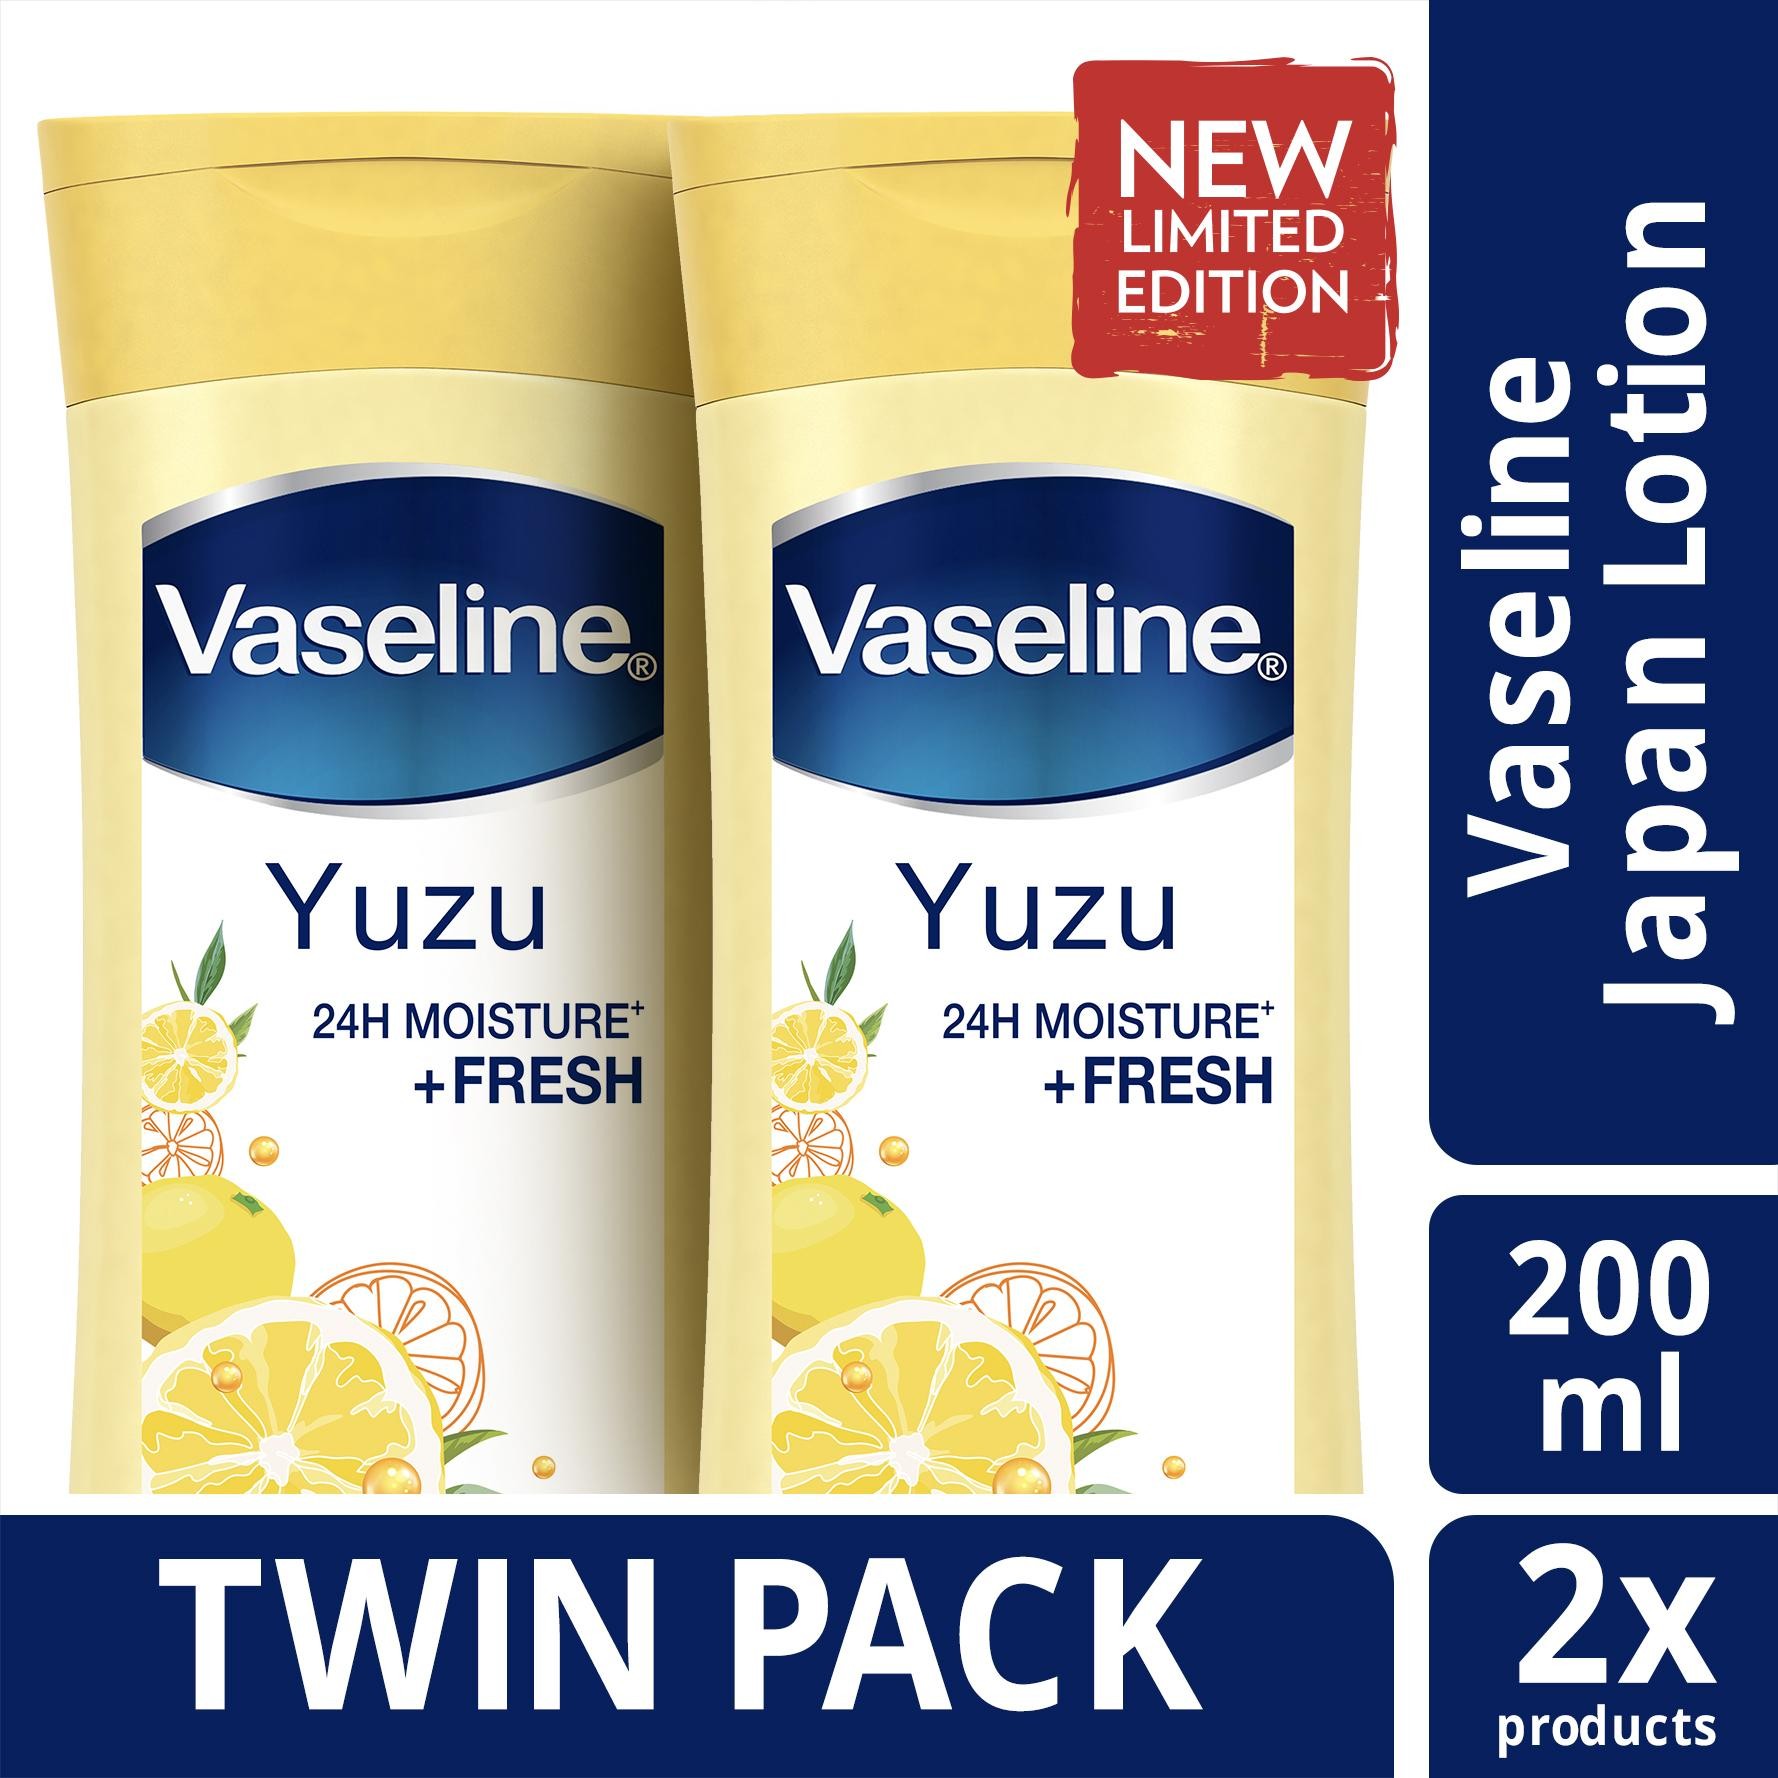 Bath Body Vaseline Lotion Healthy White Perfect 10 200ml Twin Pack Yuzu Limited Edition Jepang